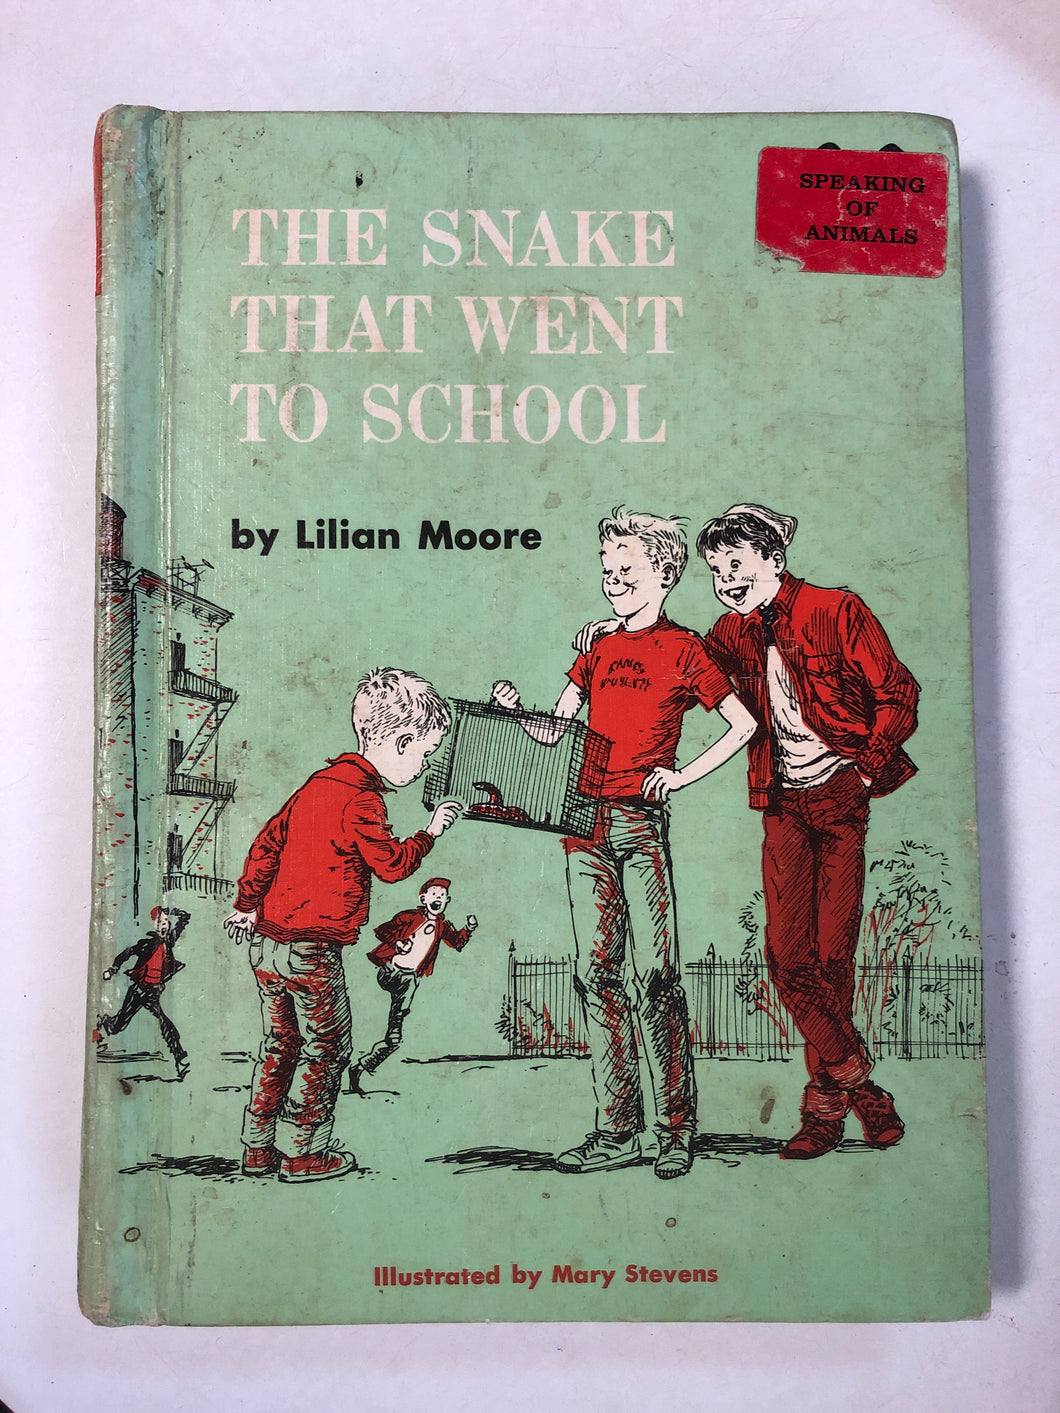 The Snake That Went To School - Slick Cat Books